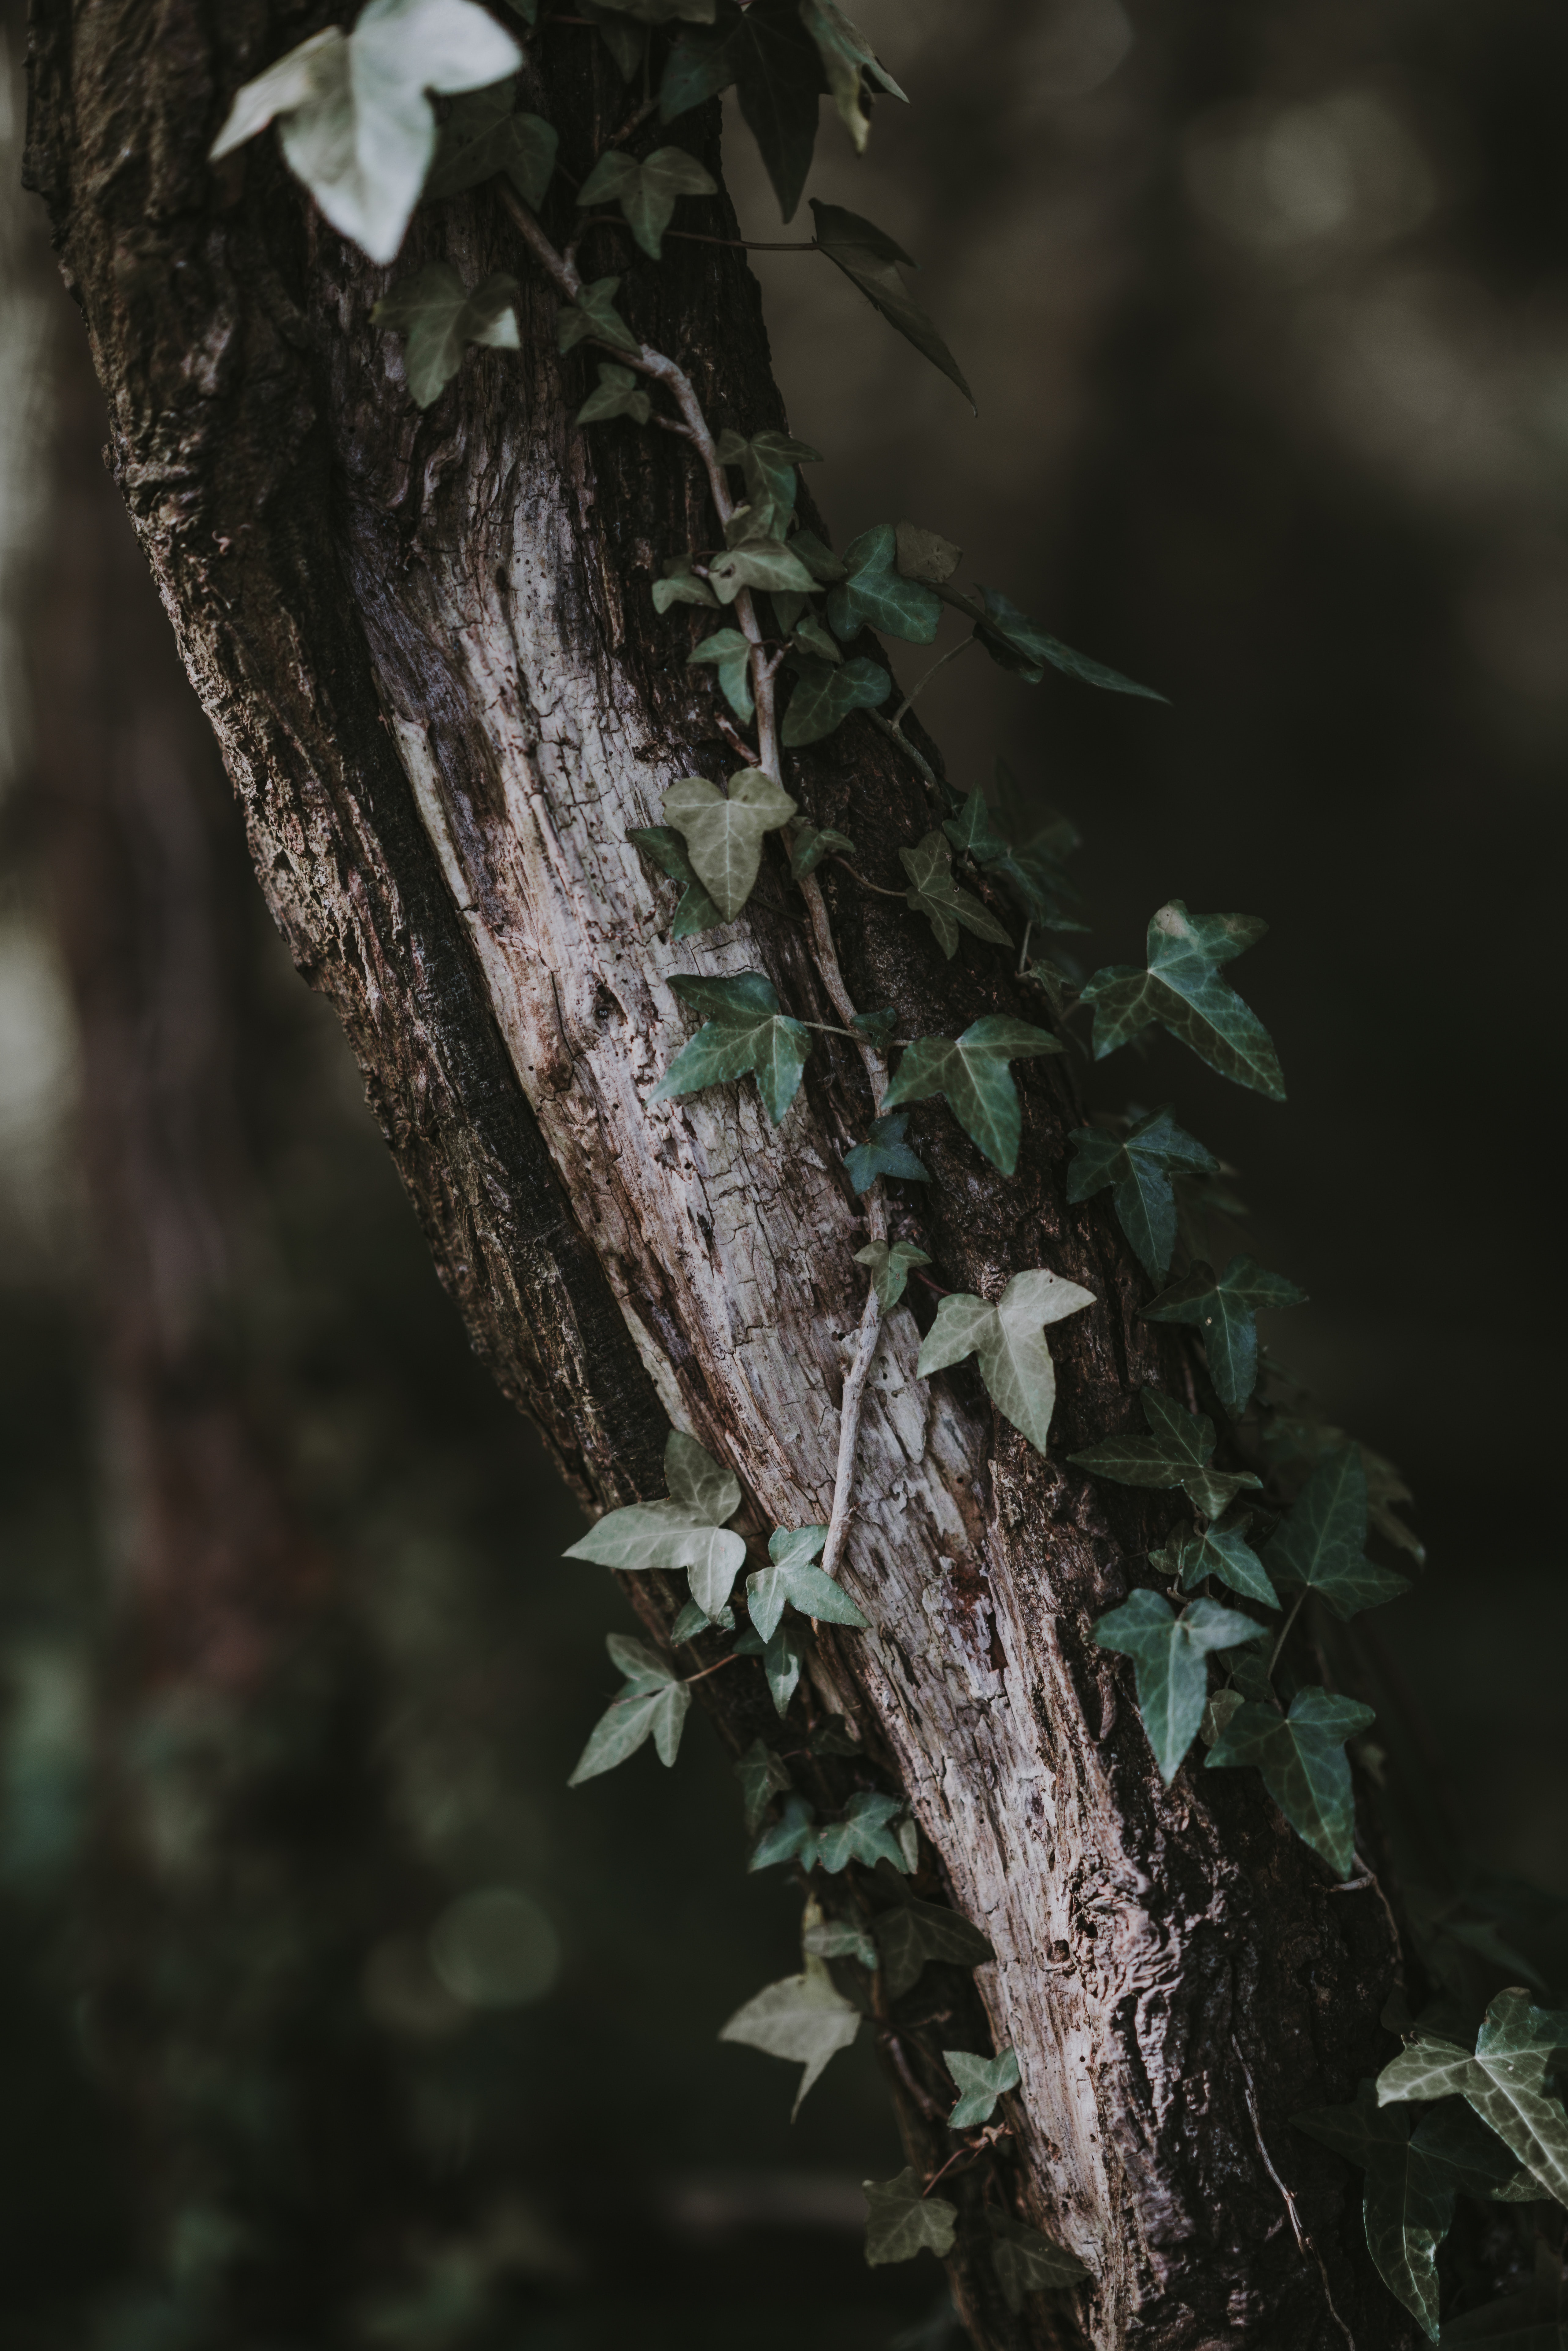 green leafed plant on tree branch